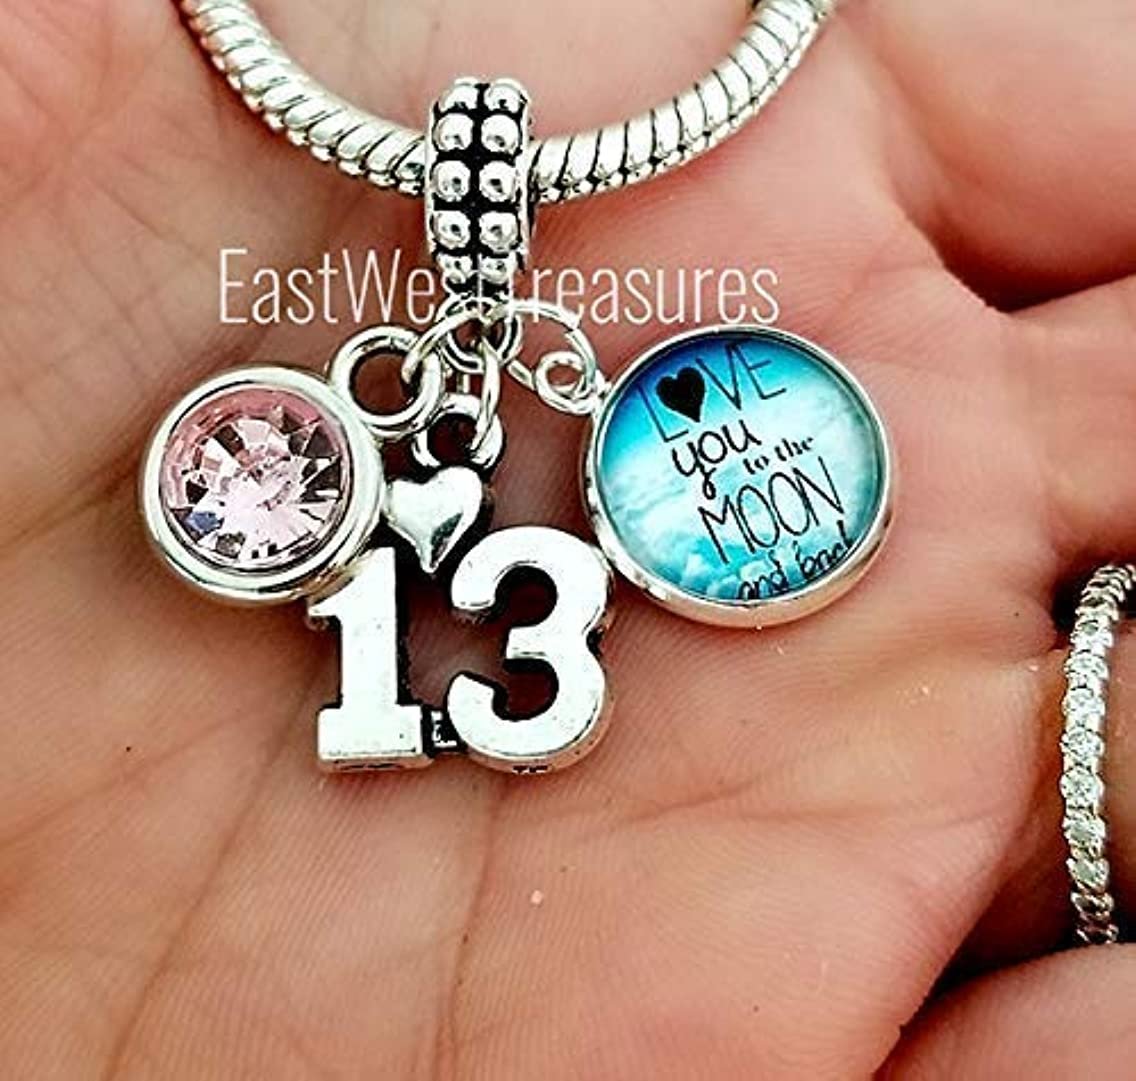 Personalized custom 13th birthday wedding anniversary charm bracelets and necklaces-Lucky Number 13 Jewelry gifts for women